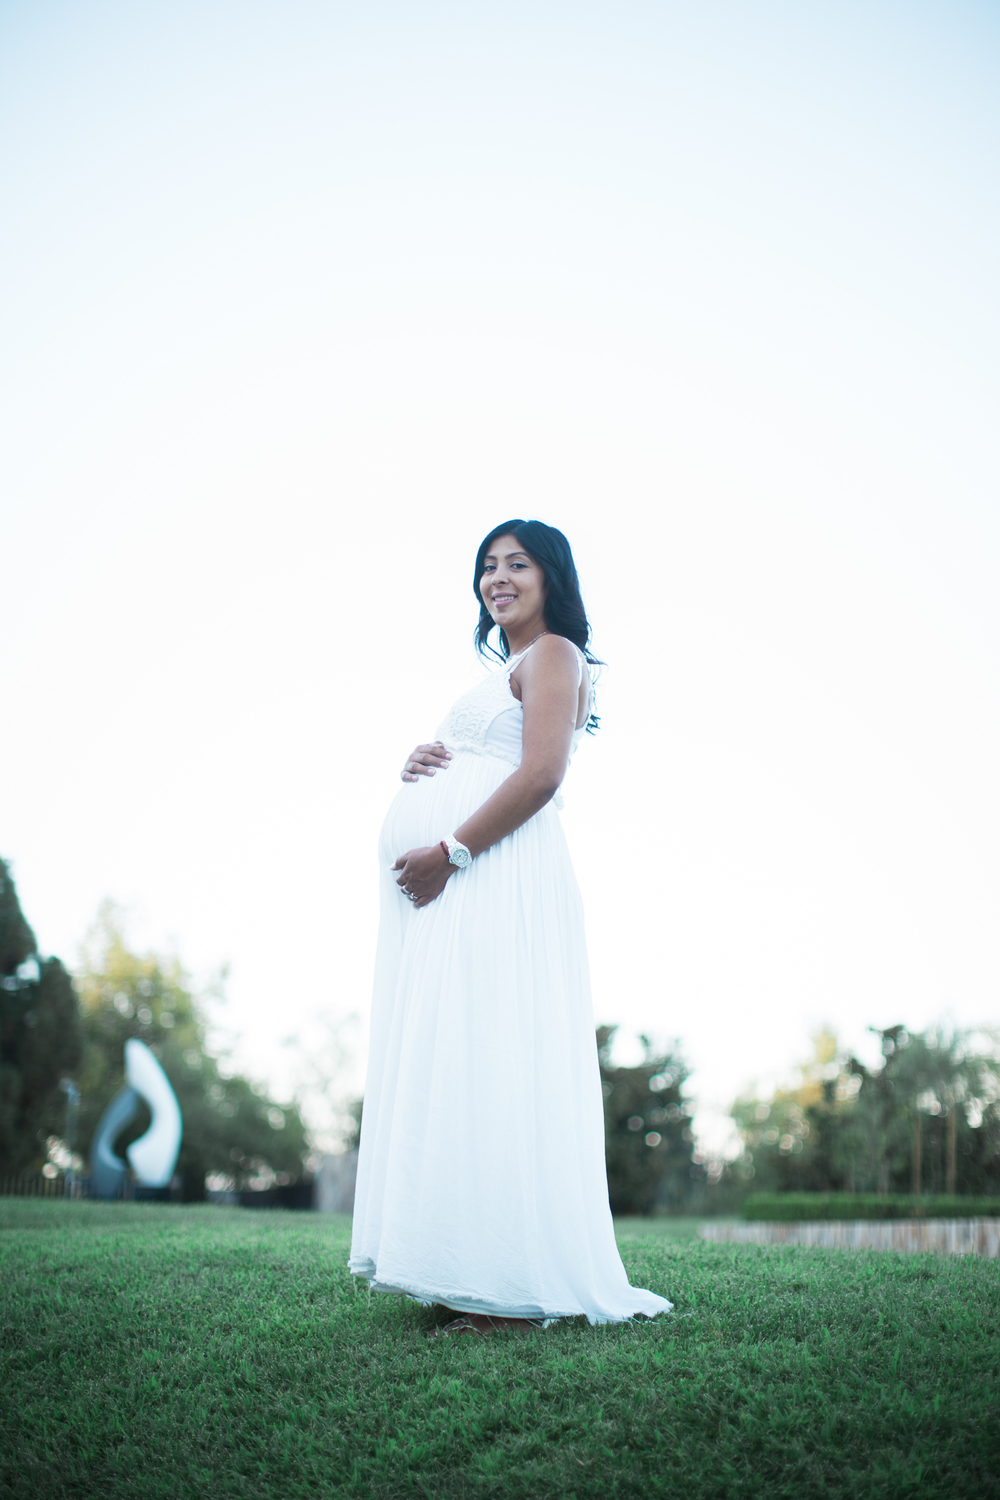 Marcella_Maternity_Cerritos_BrandonJFerlin_Photography-74.jpg